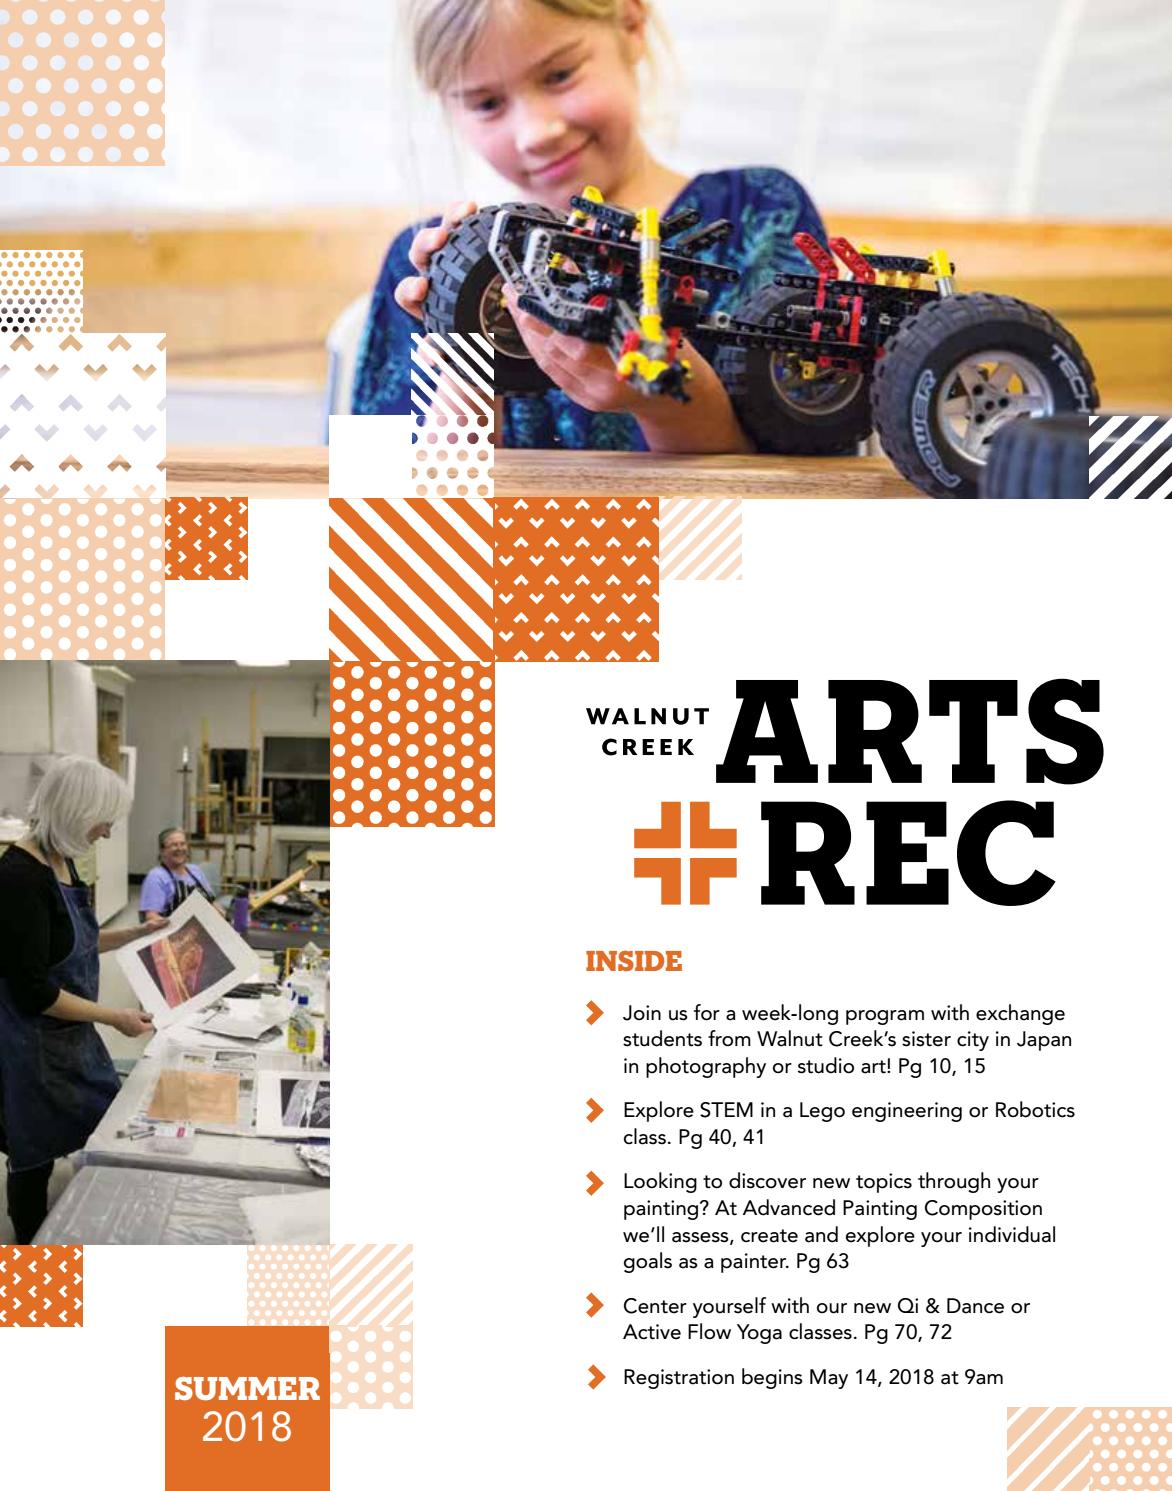 c1ecb46bea76 City of Walnut Creek Guide to Arts + Rec - Summer 2018 by City of ...